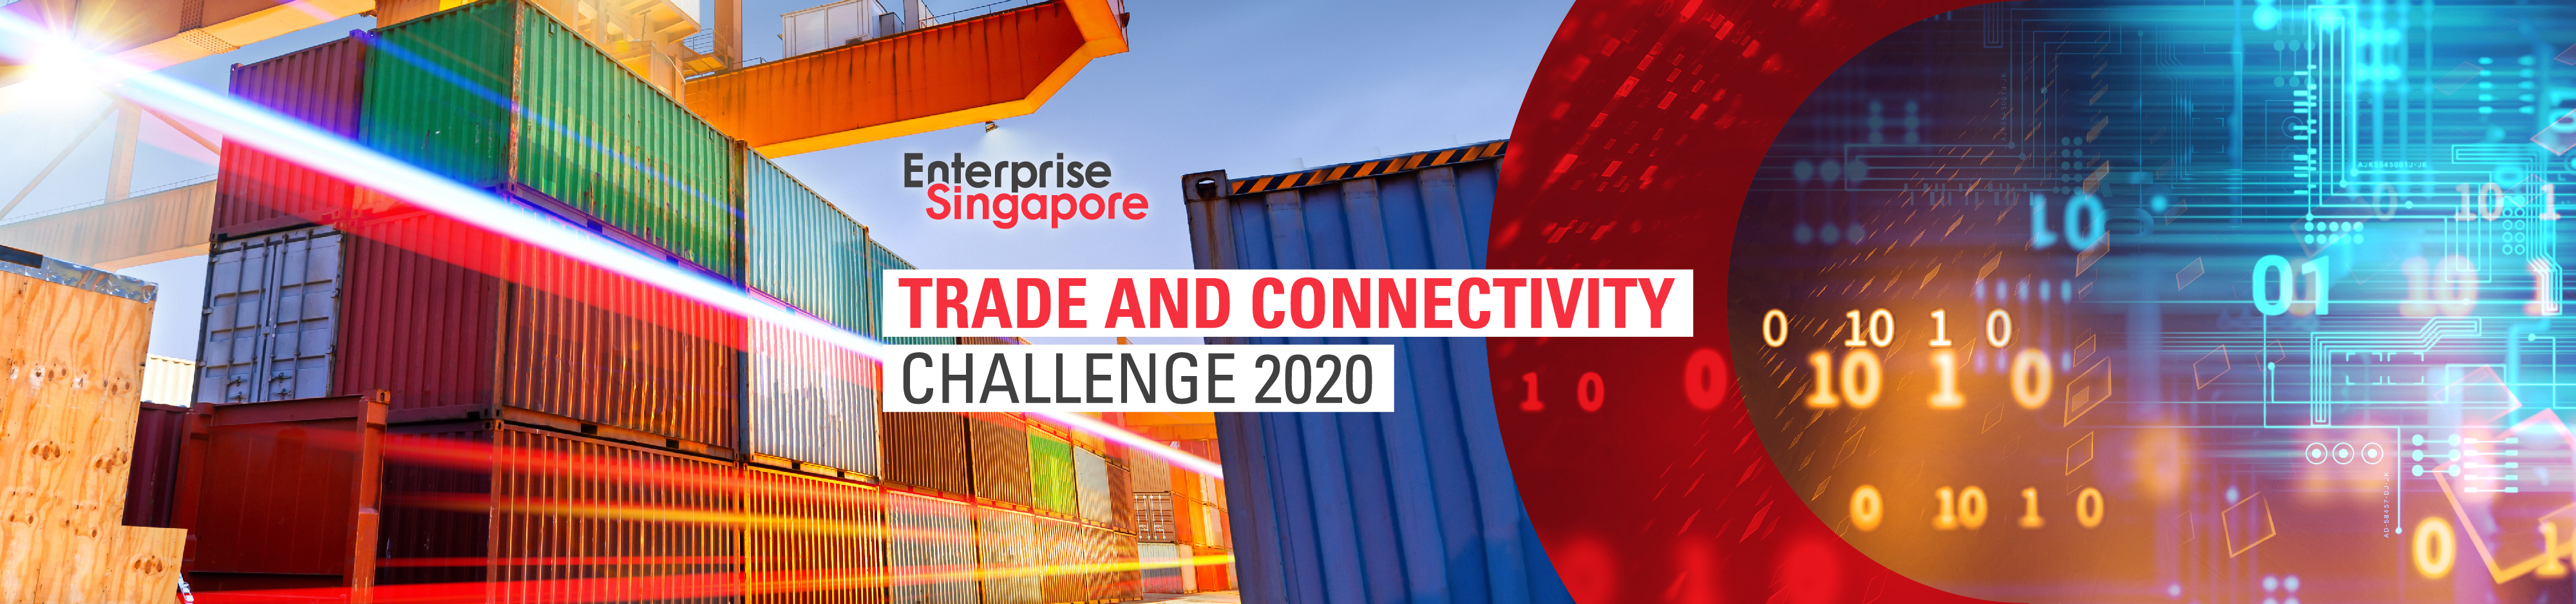 Trade and Connectivity Challenge 2020 - Industry Track